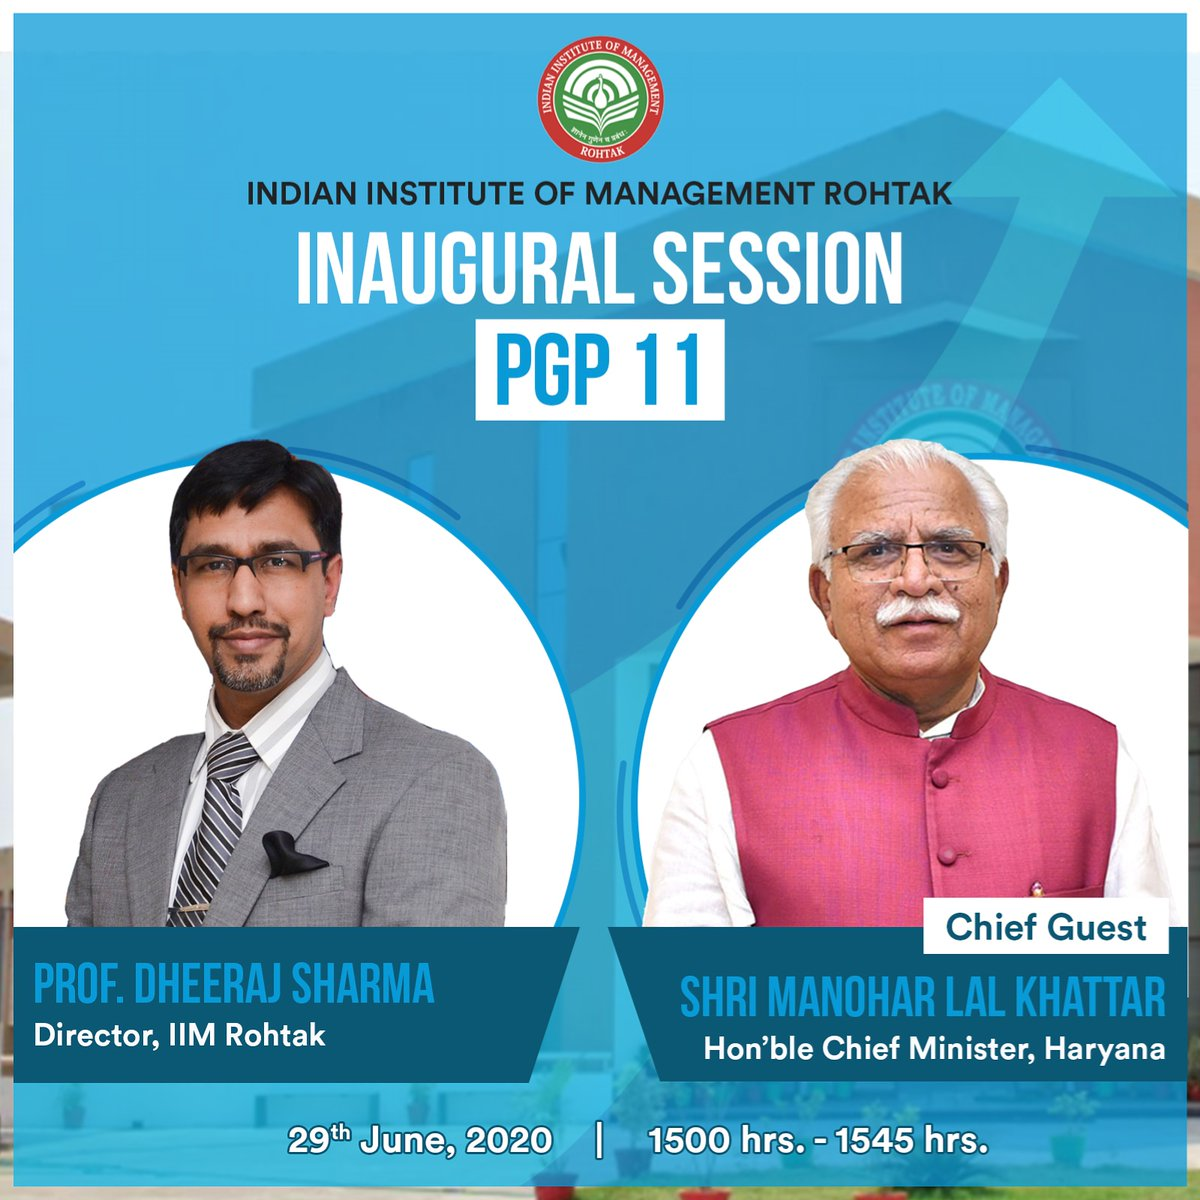 The Inaugural Session of PGP 11 is all set to start on a high note. Shri Manohar Lal Khattar(@mlkhattar), Hon'ble Chief Minister, Haryana,  will grace the session with his presence as the Chief Guest and address the students at IIM Rohtak. #MBA #BatchOf22 #IIMR  #IIMRohtak https://t.co/Ekoh7qJoO9